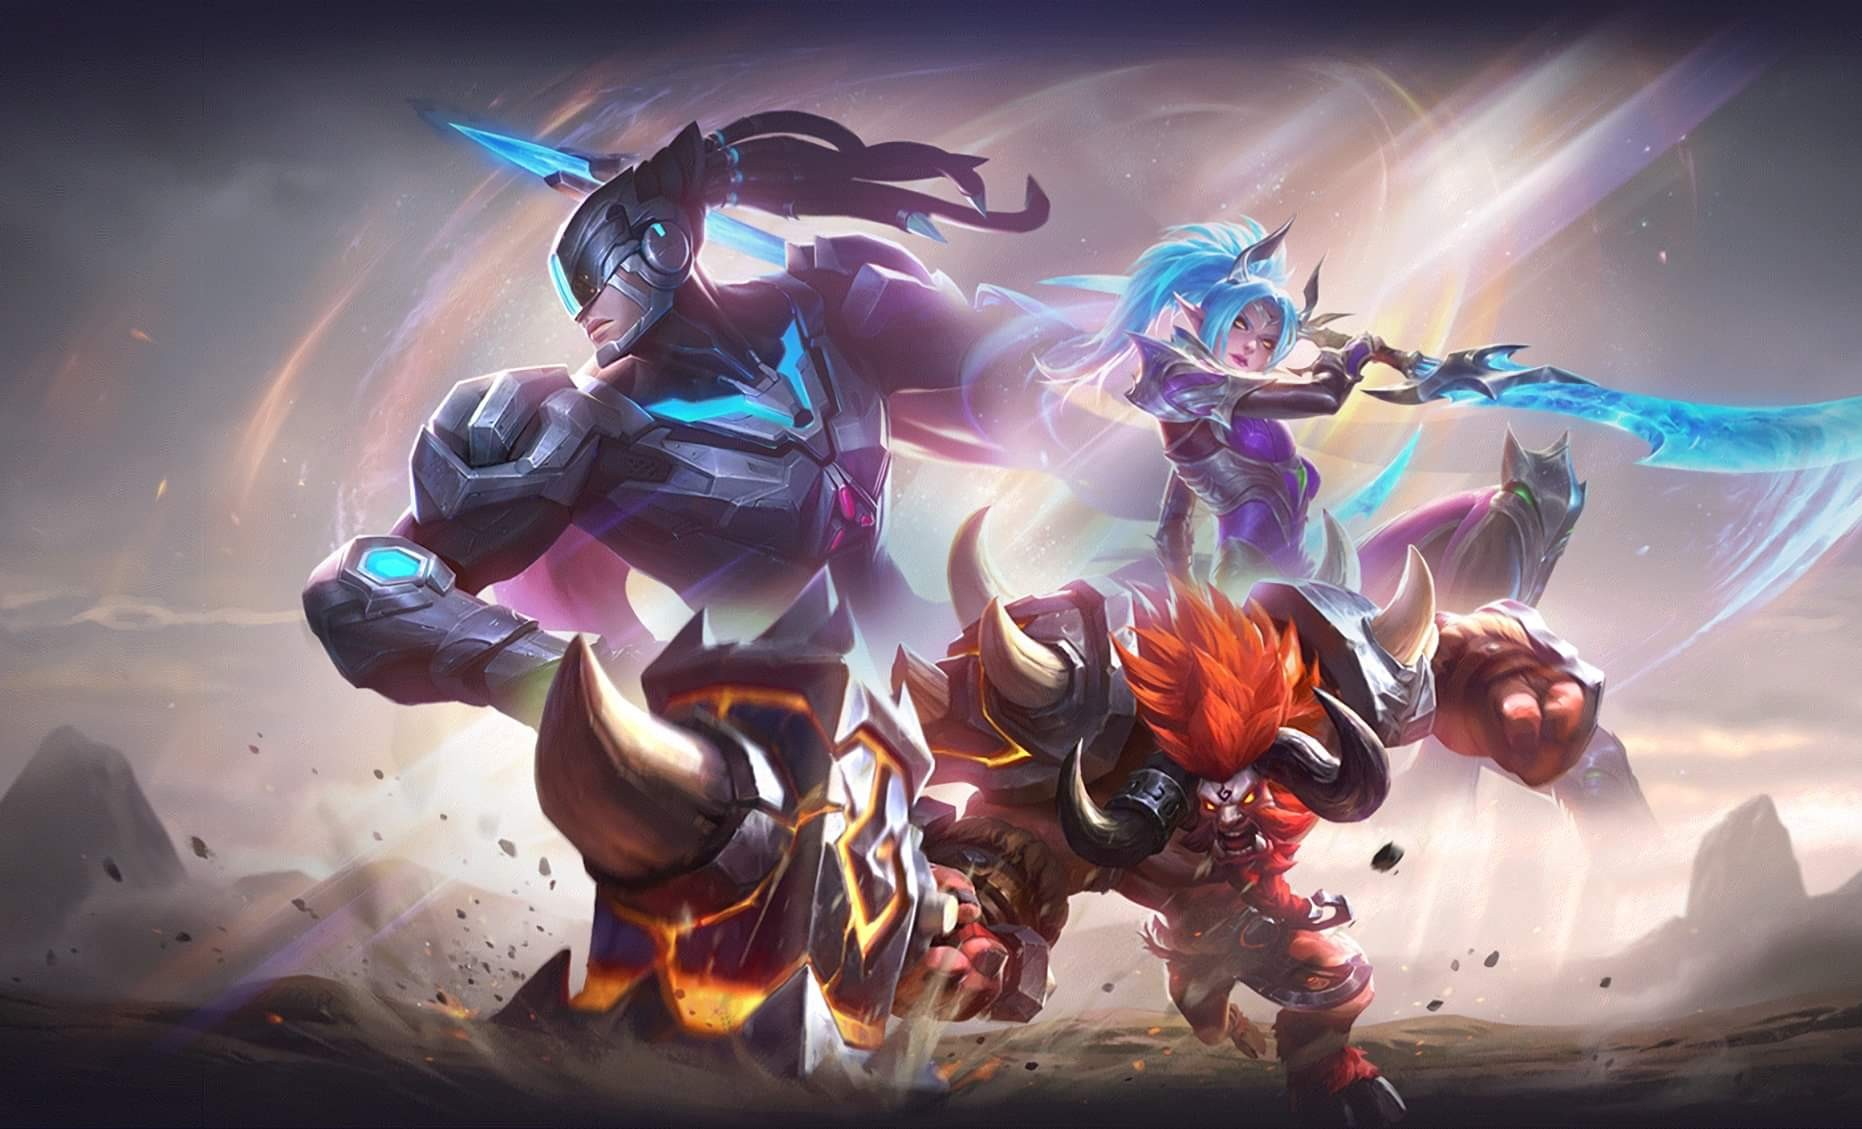 Hd wallpaper mobile legends - Hd Wallpaper Mobile Legends 46